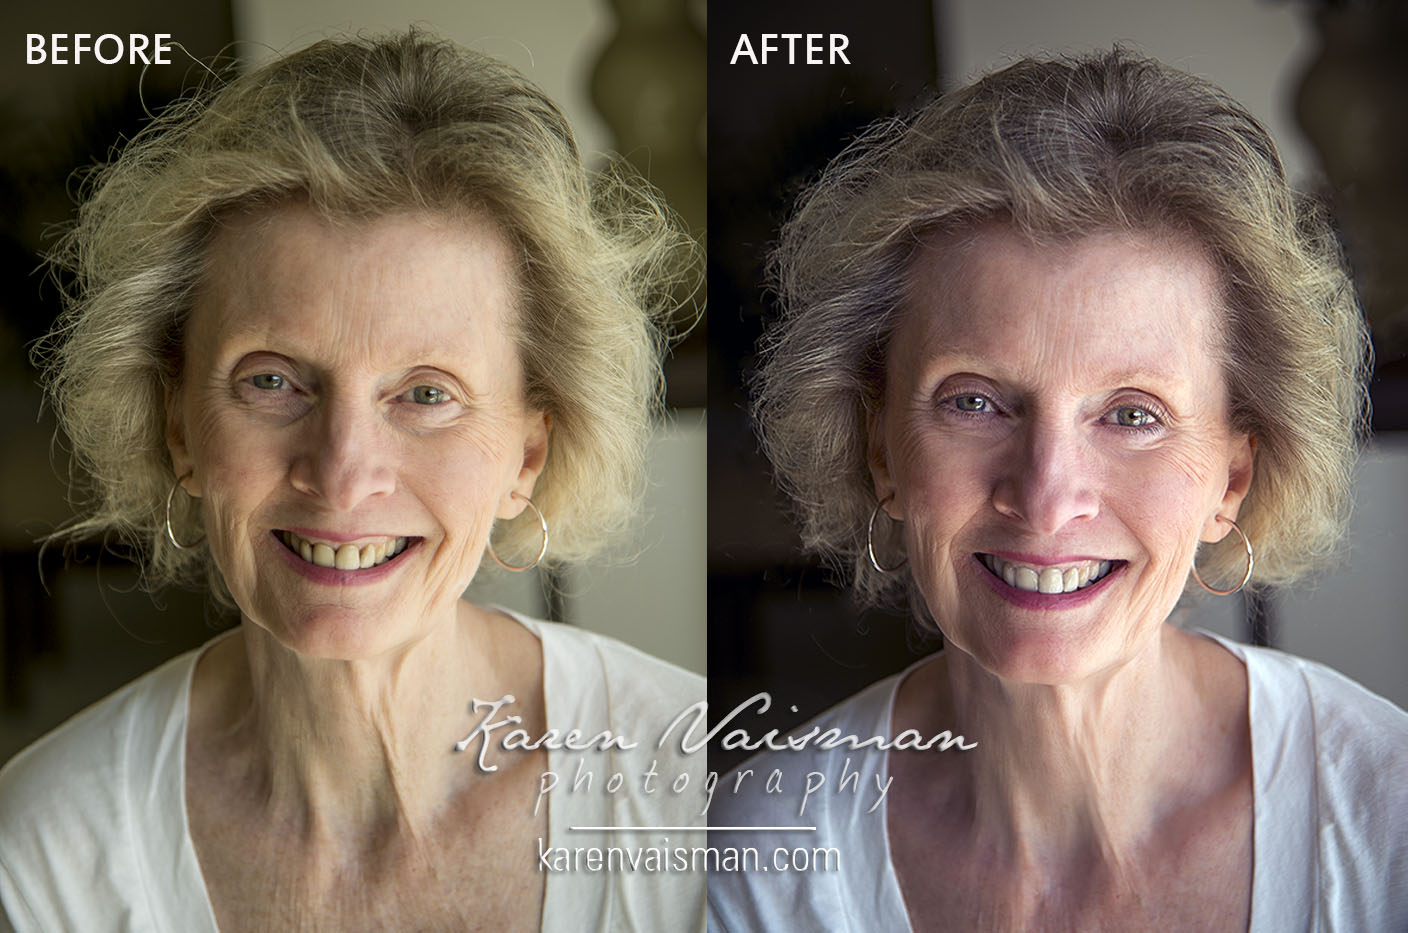 Before and After - Digital Makeup, Hair and Makeover - Westlake Village, Malibu - Karen Vaisman Photography (818) 991-7787